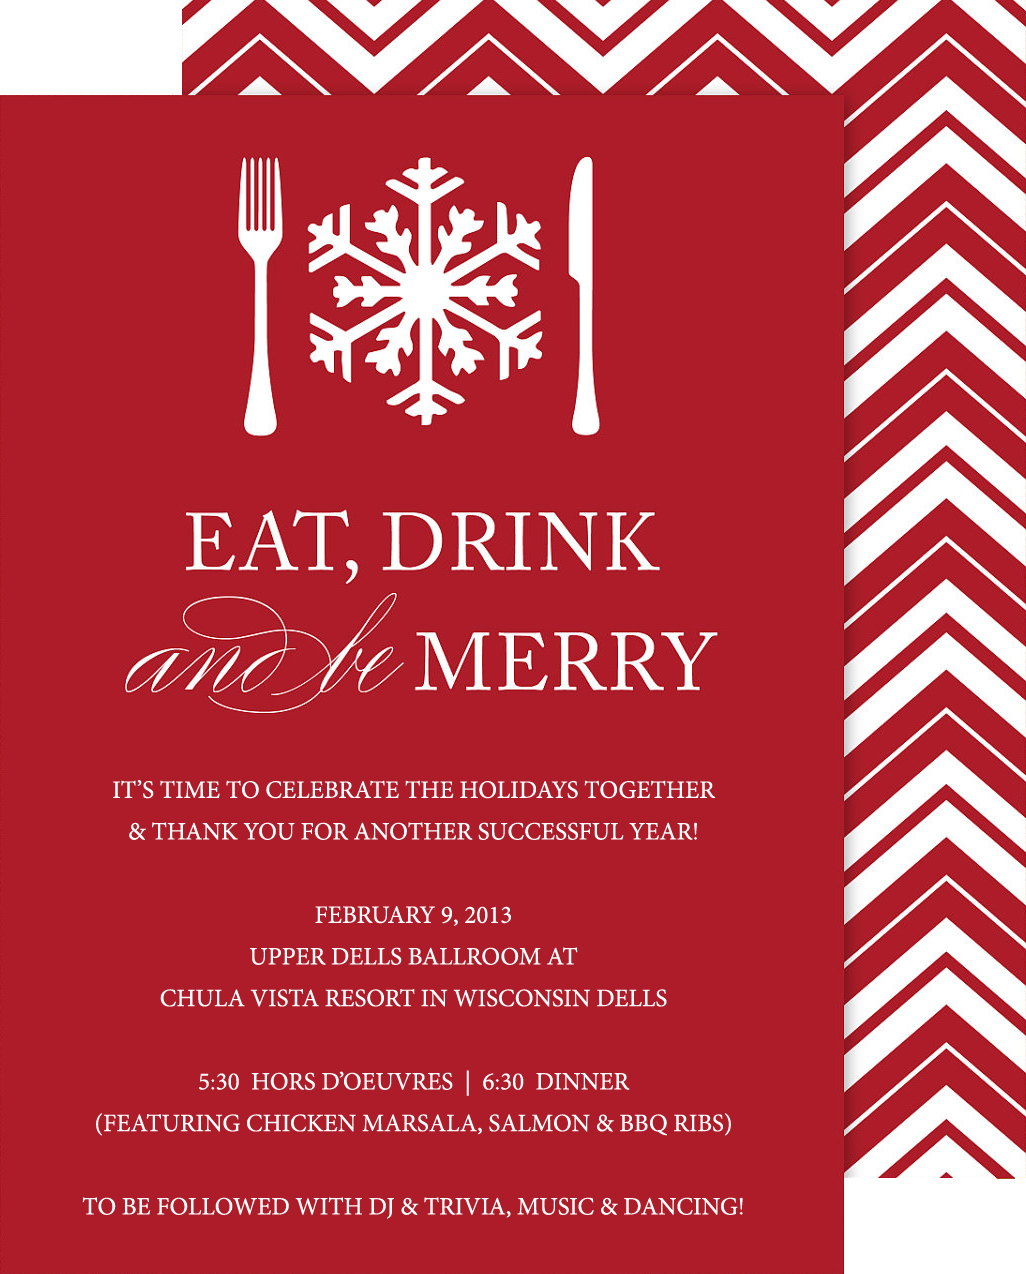 Invitations For Christmas Party - Mickey Mouse Invitations Templates